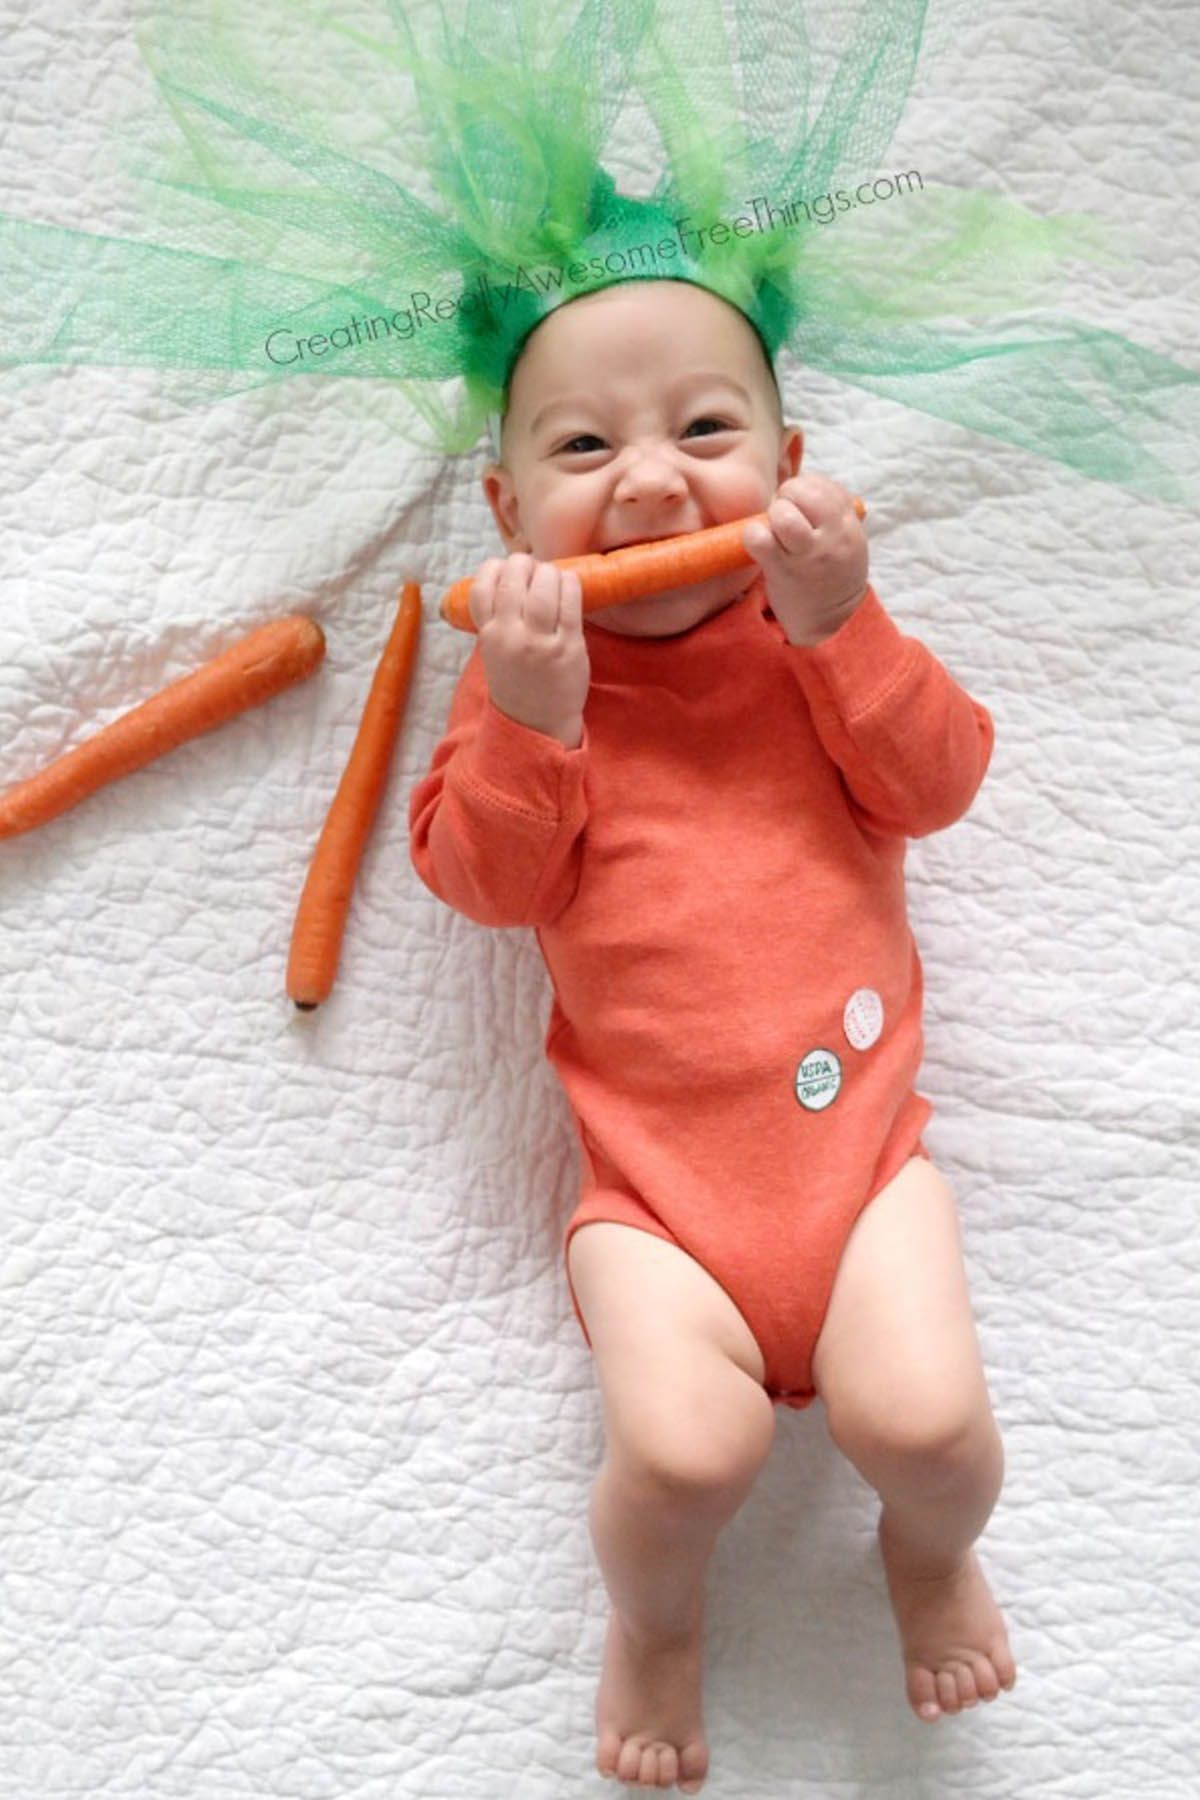 f762939f3 27 Cute Baby Halloween Costumes 2018 - Best Ideas for Boy   Girl ...